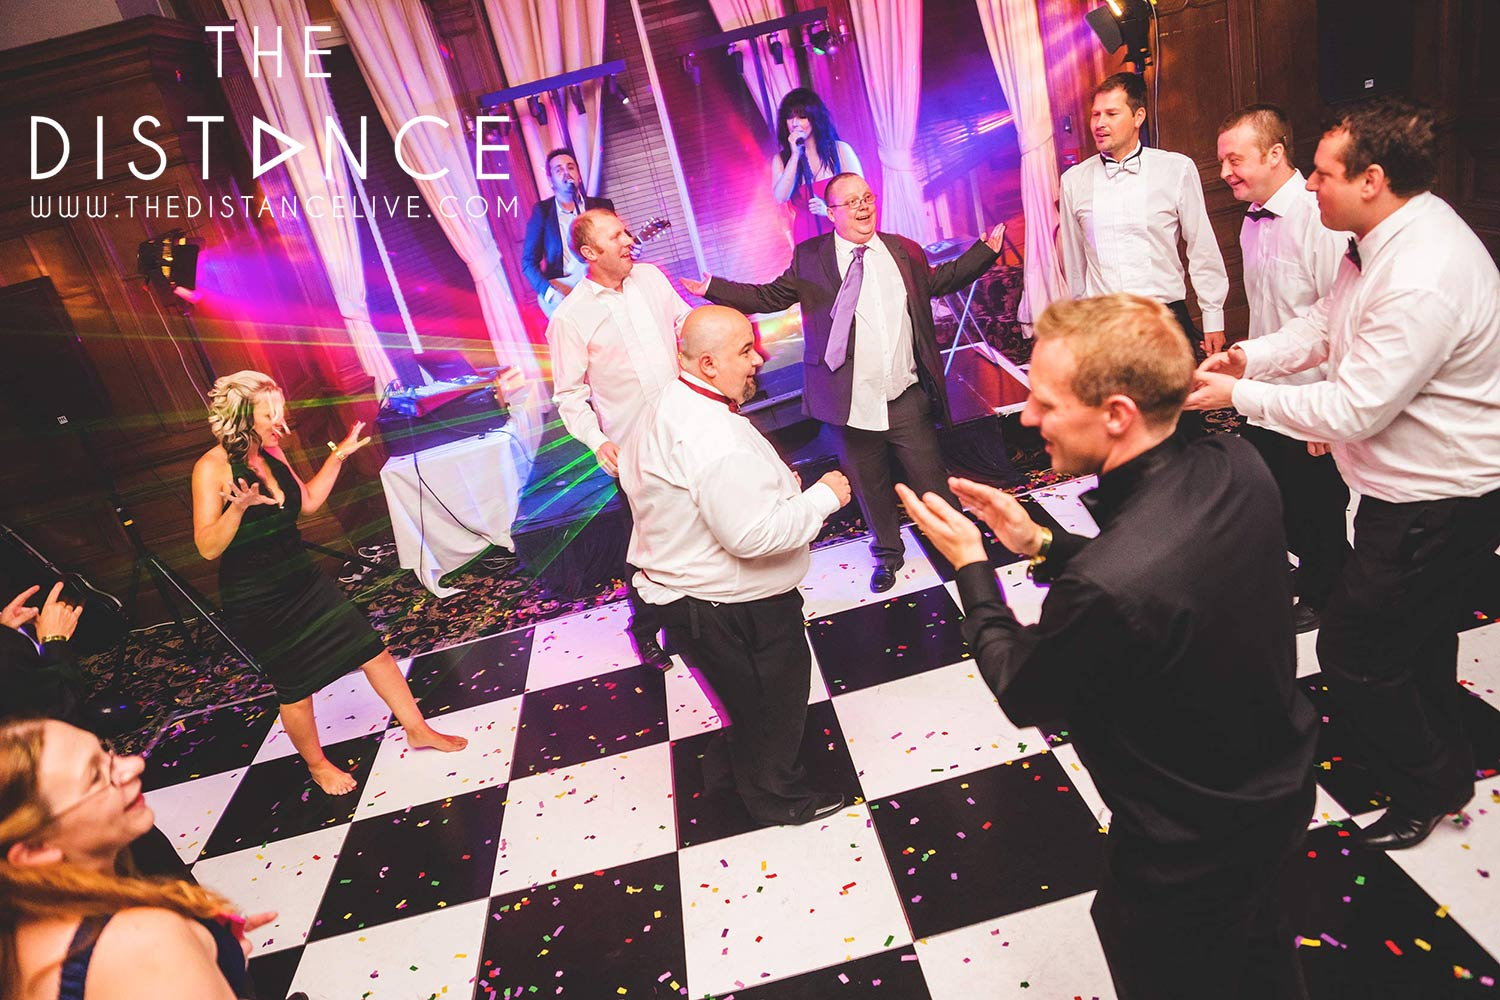 Bradford party band wedding band   The Distance